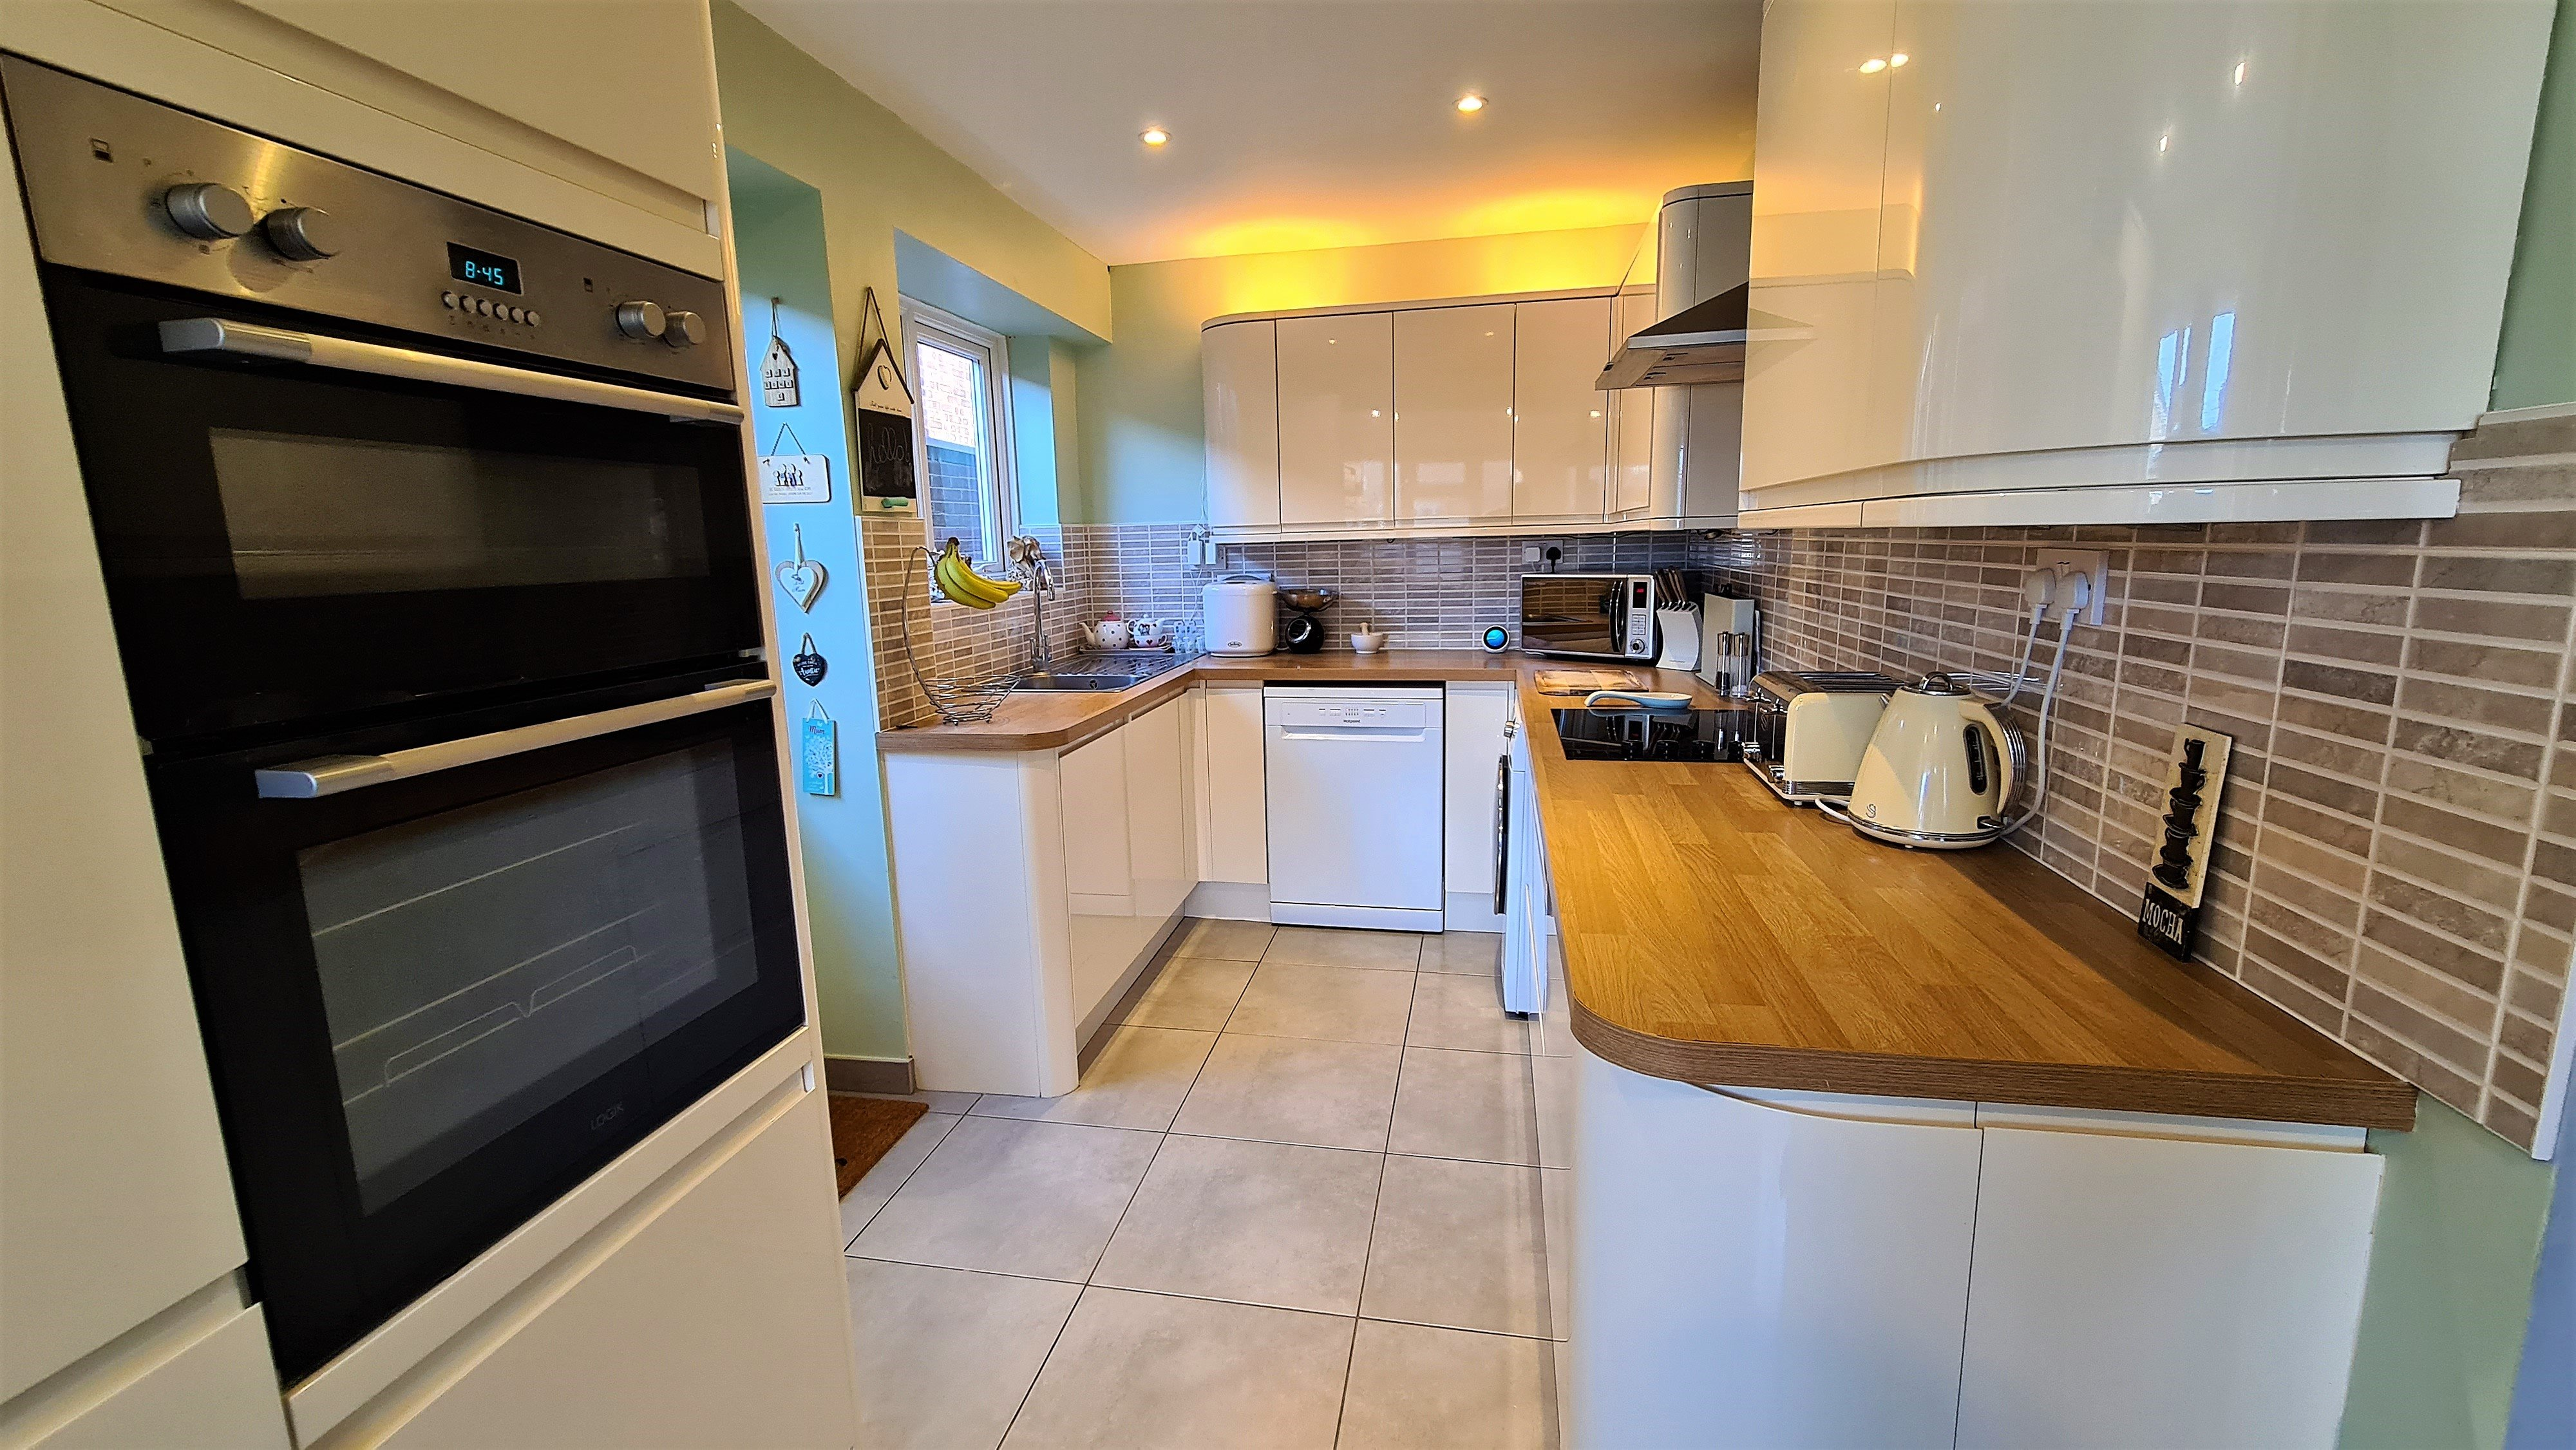 3 bed detached house for sale in Barbrook Way, Bicknacre, CM3